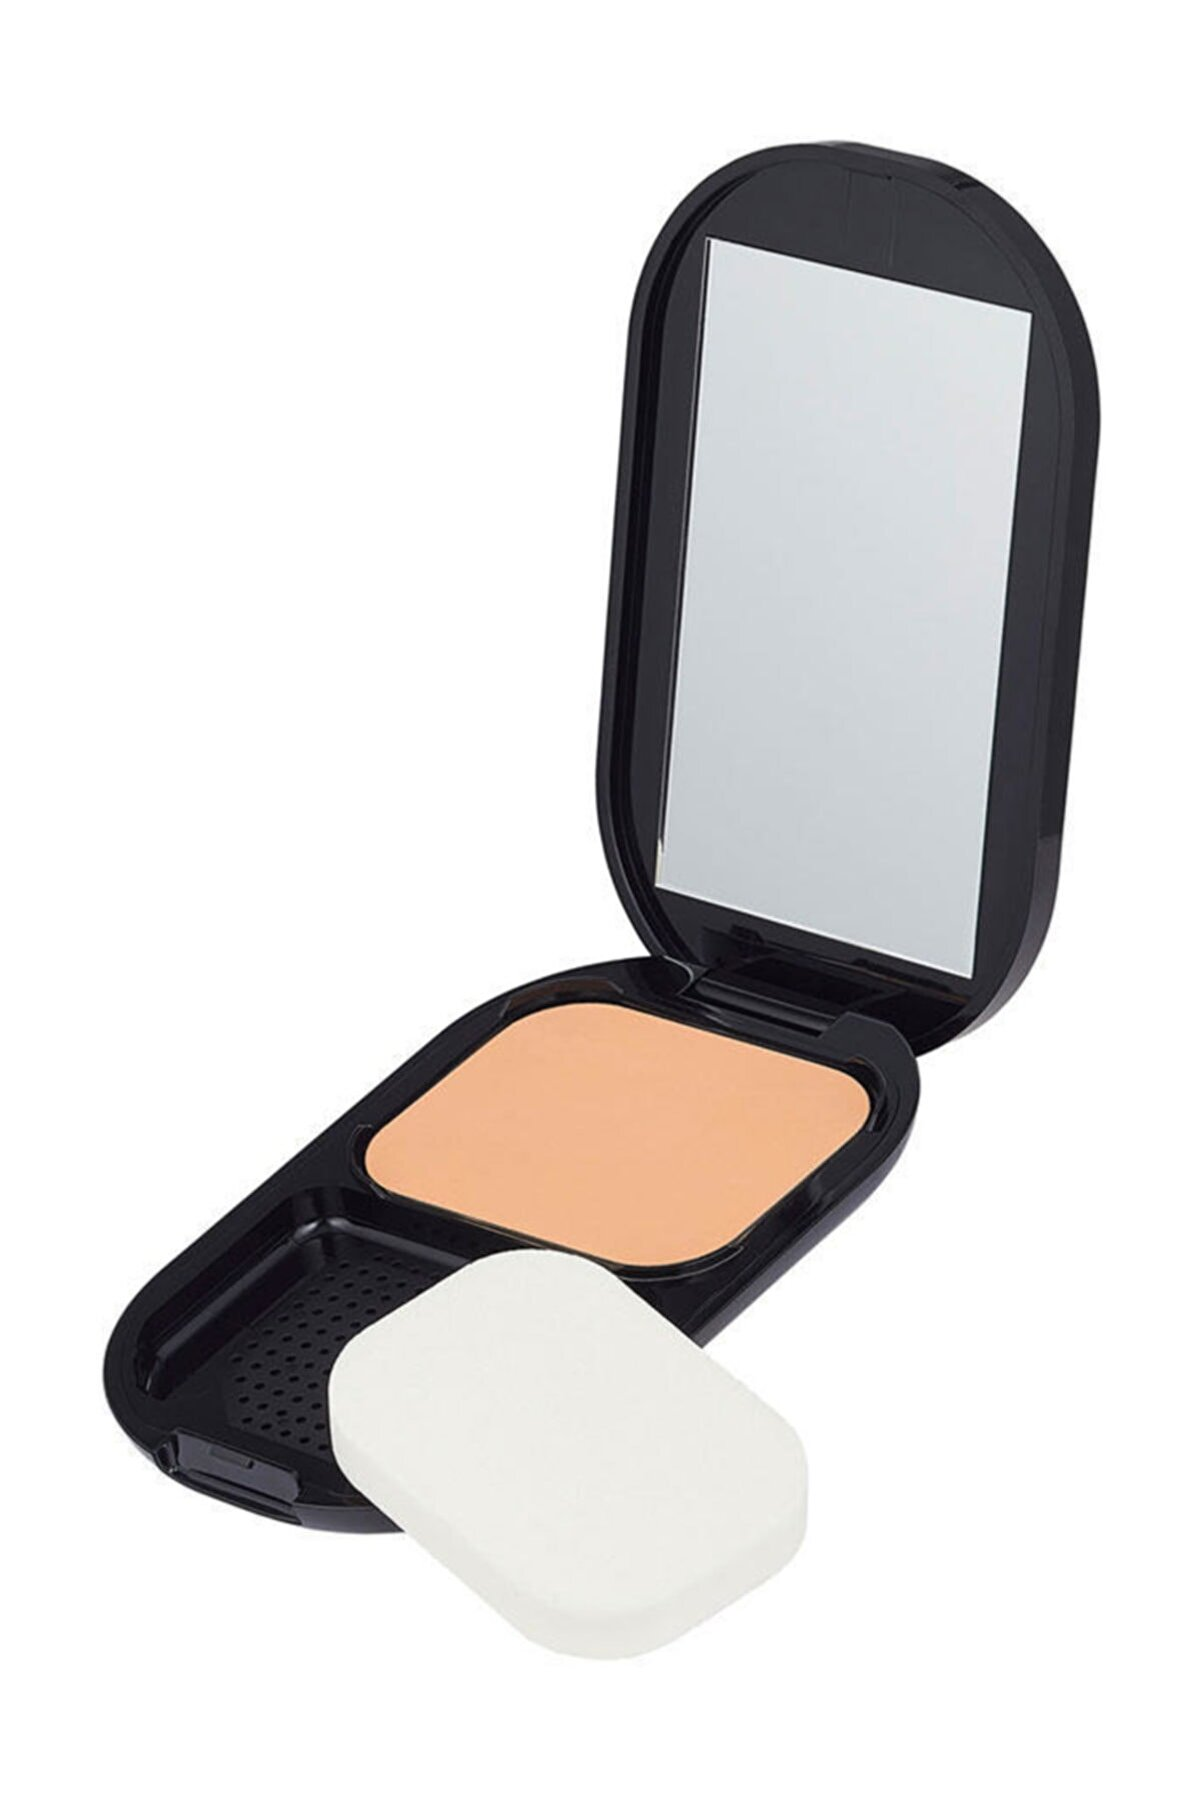 Max Factor Pudra - Facefinity Compact Powder 002 Ivory 8005610544953